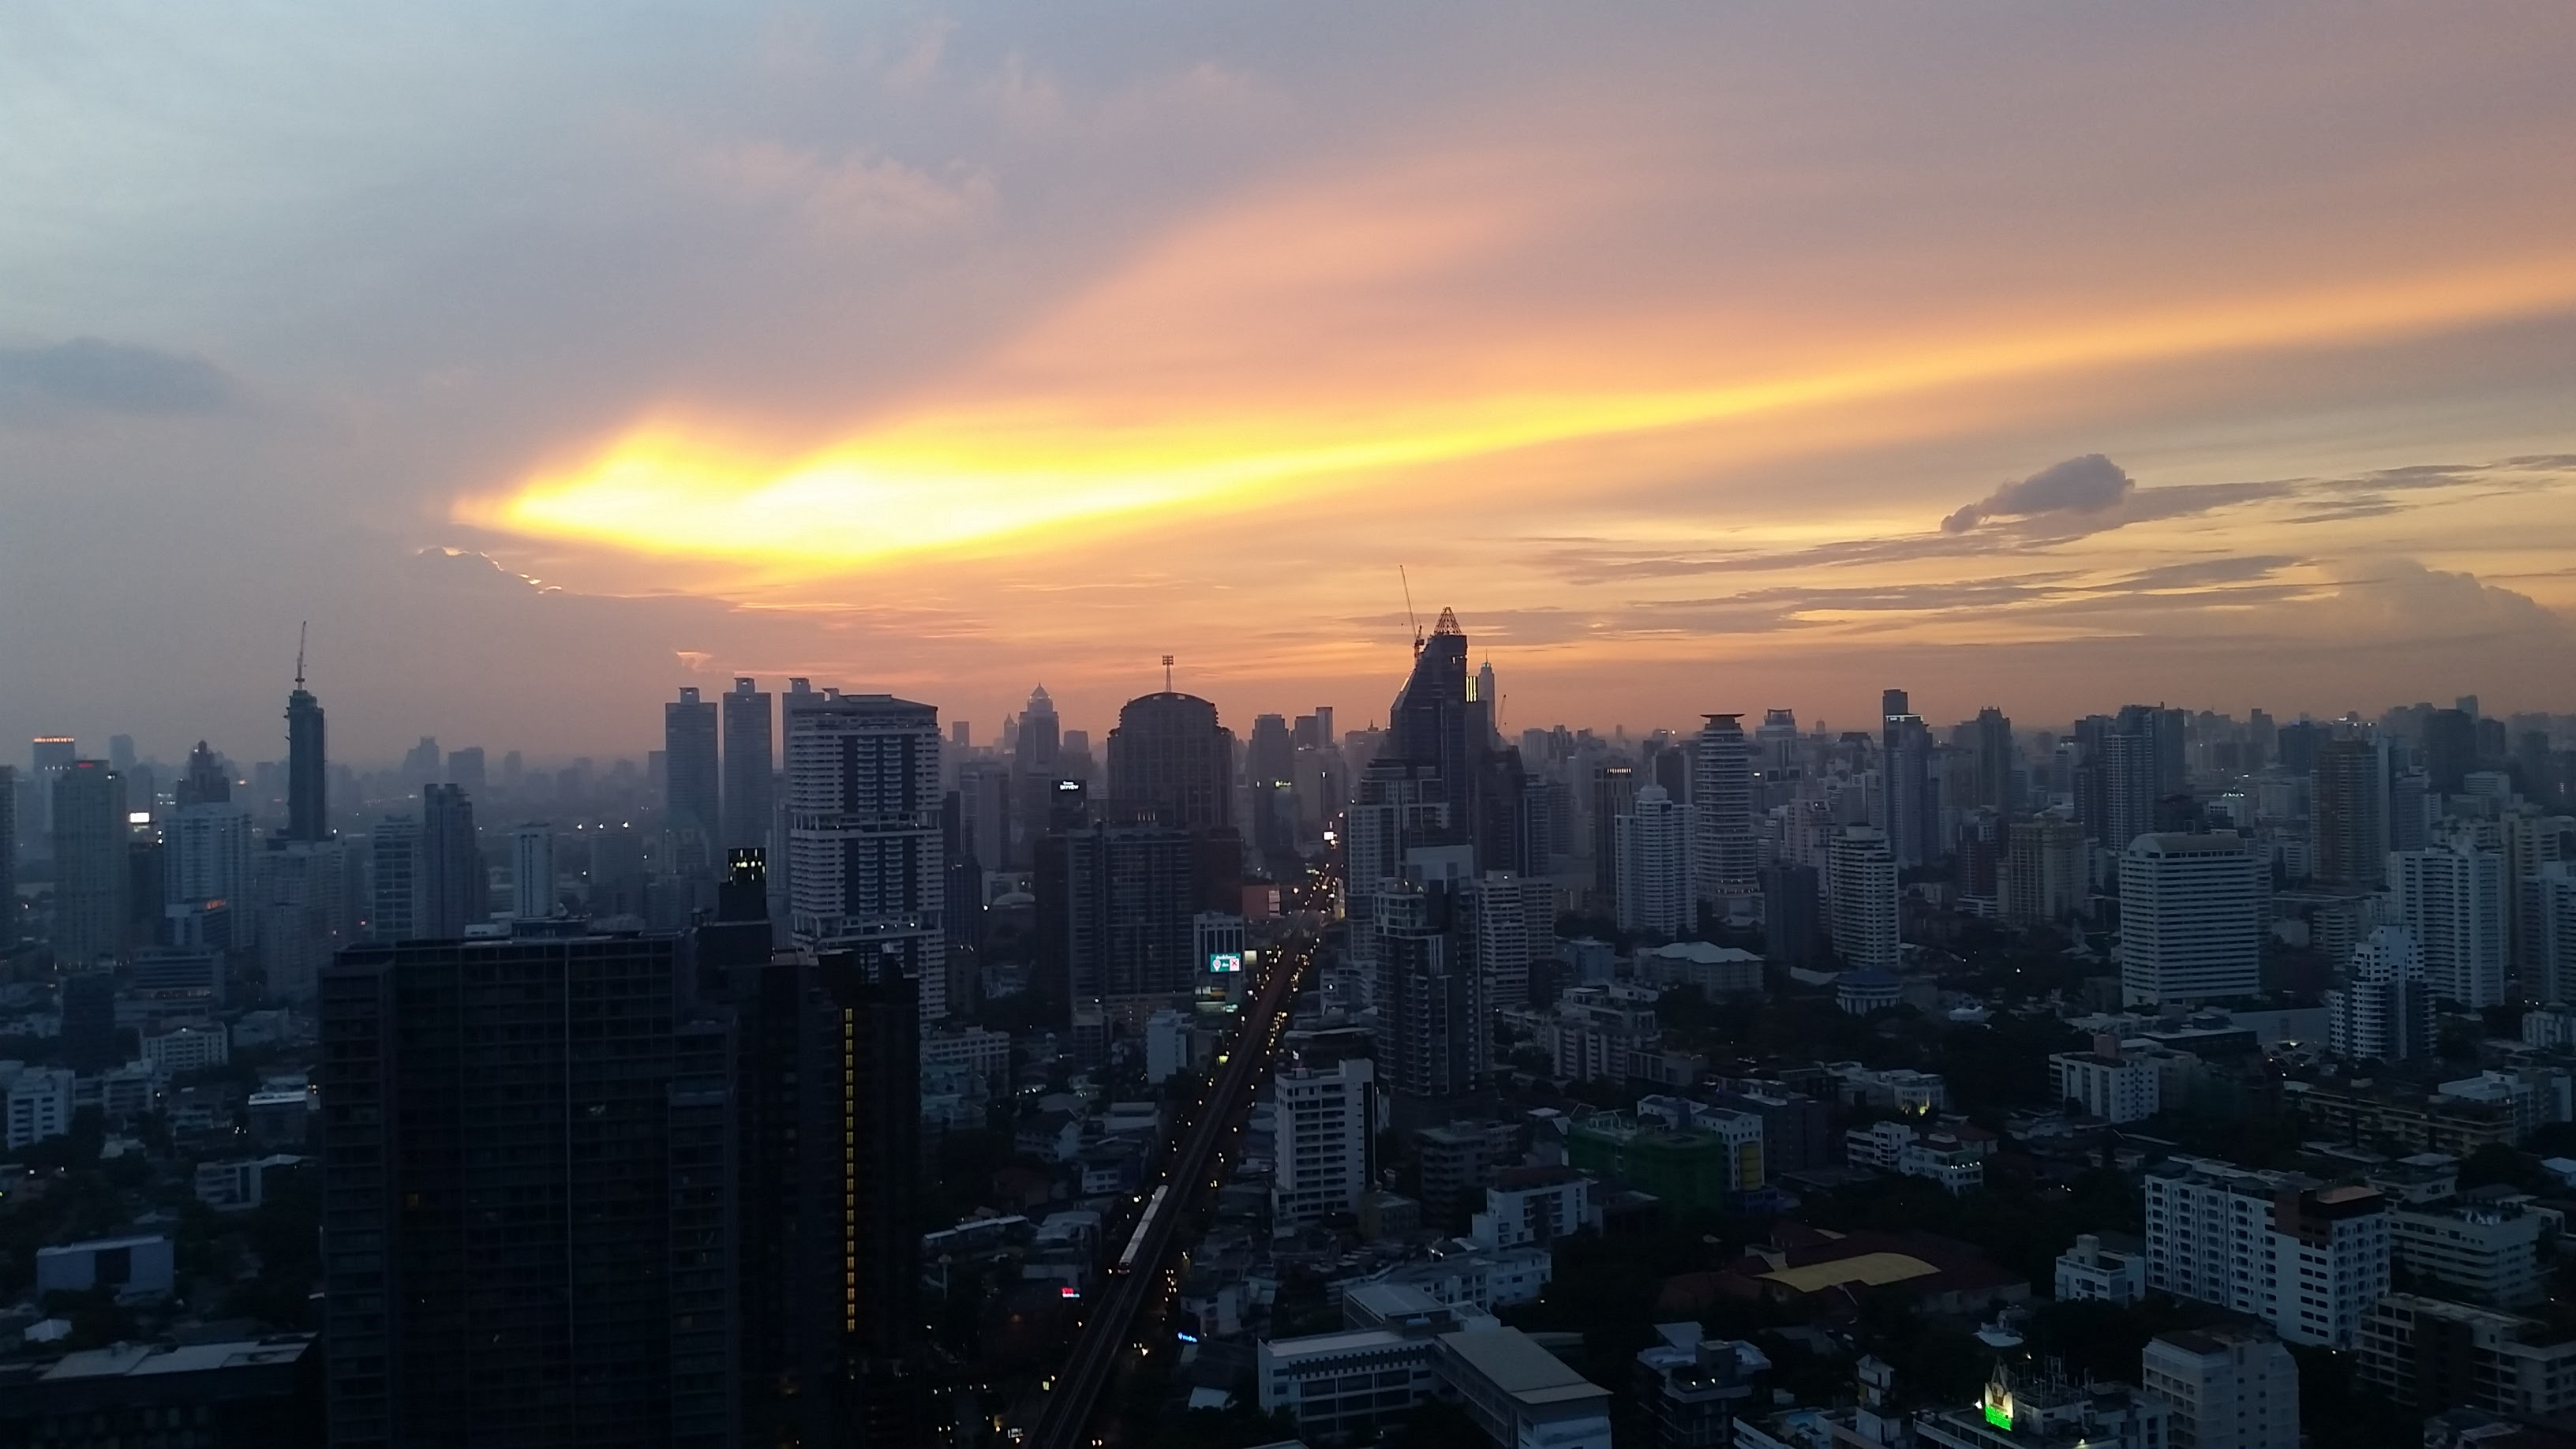 sunset_bangkok